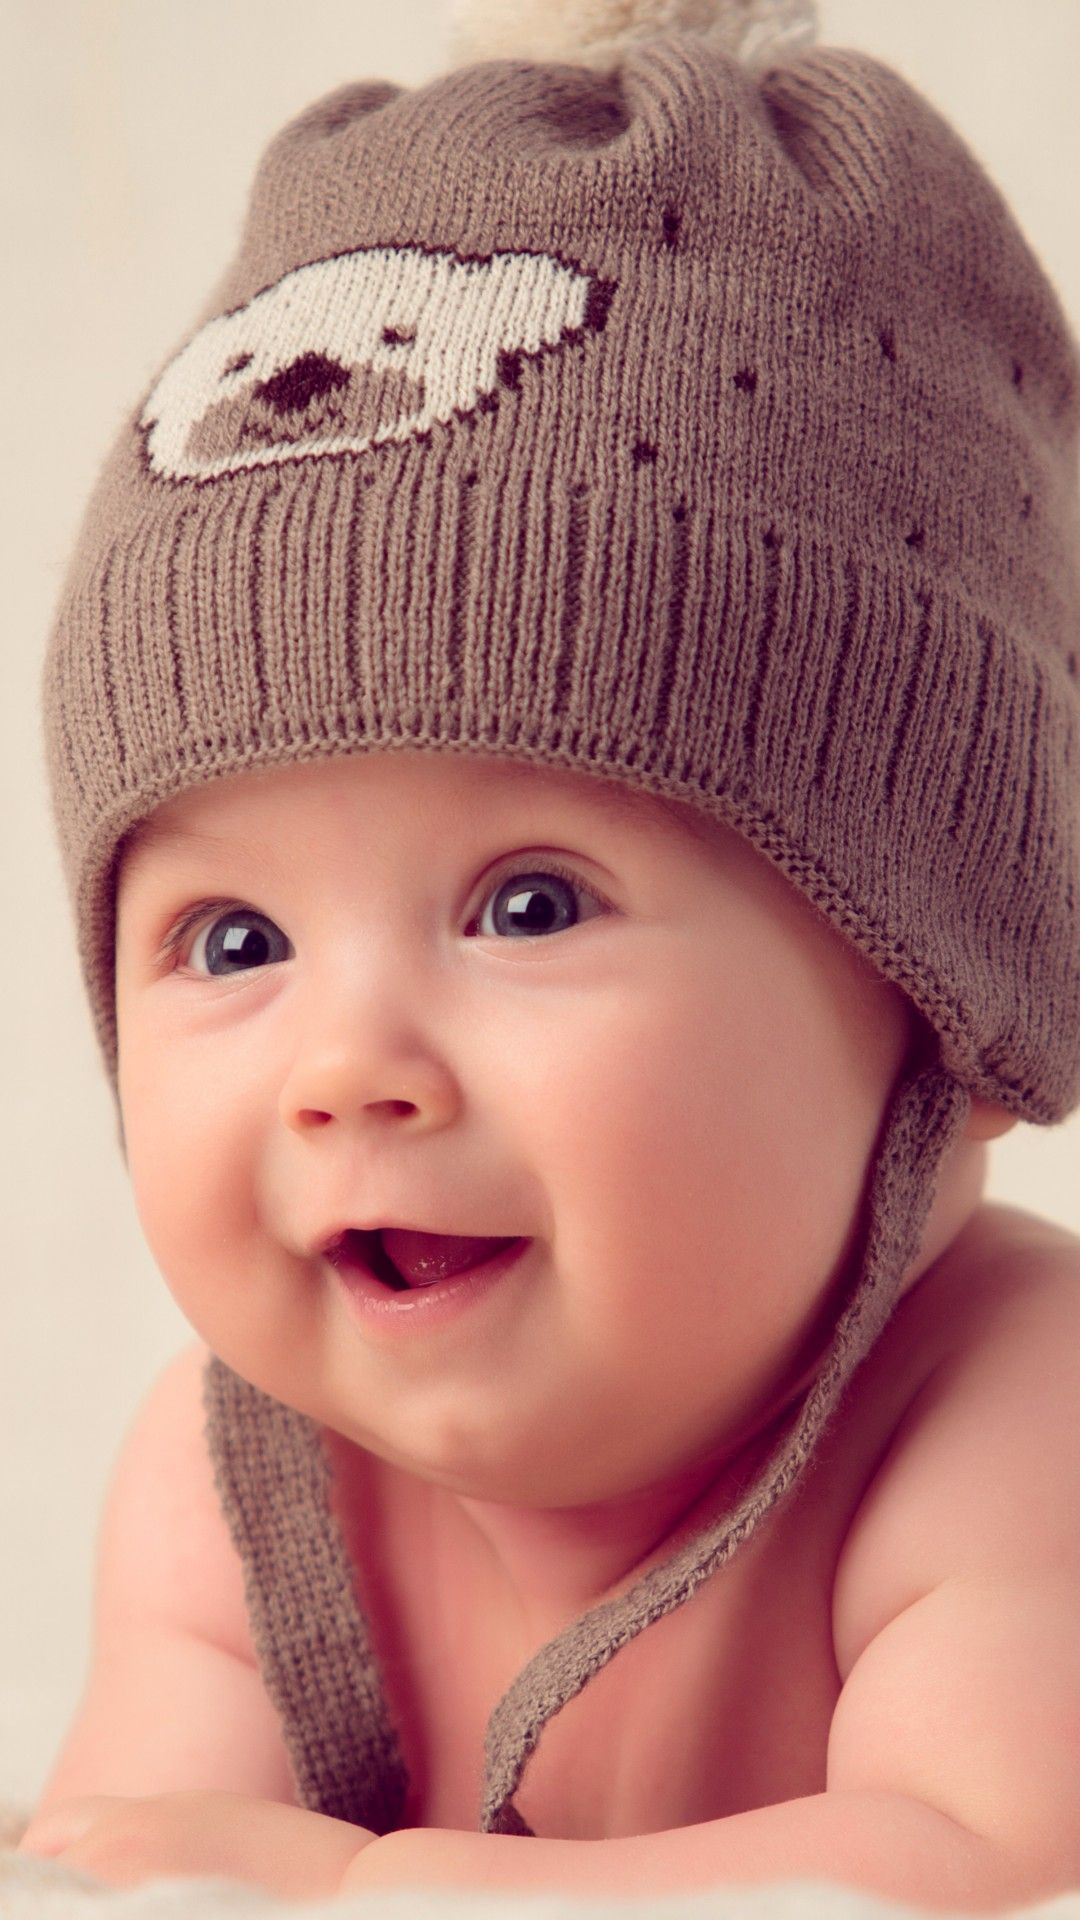 Cute Baby Boy Wallpaper For Phone